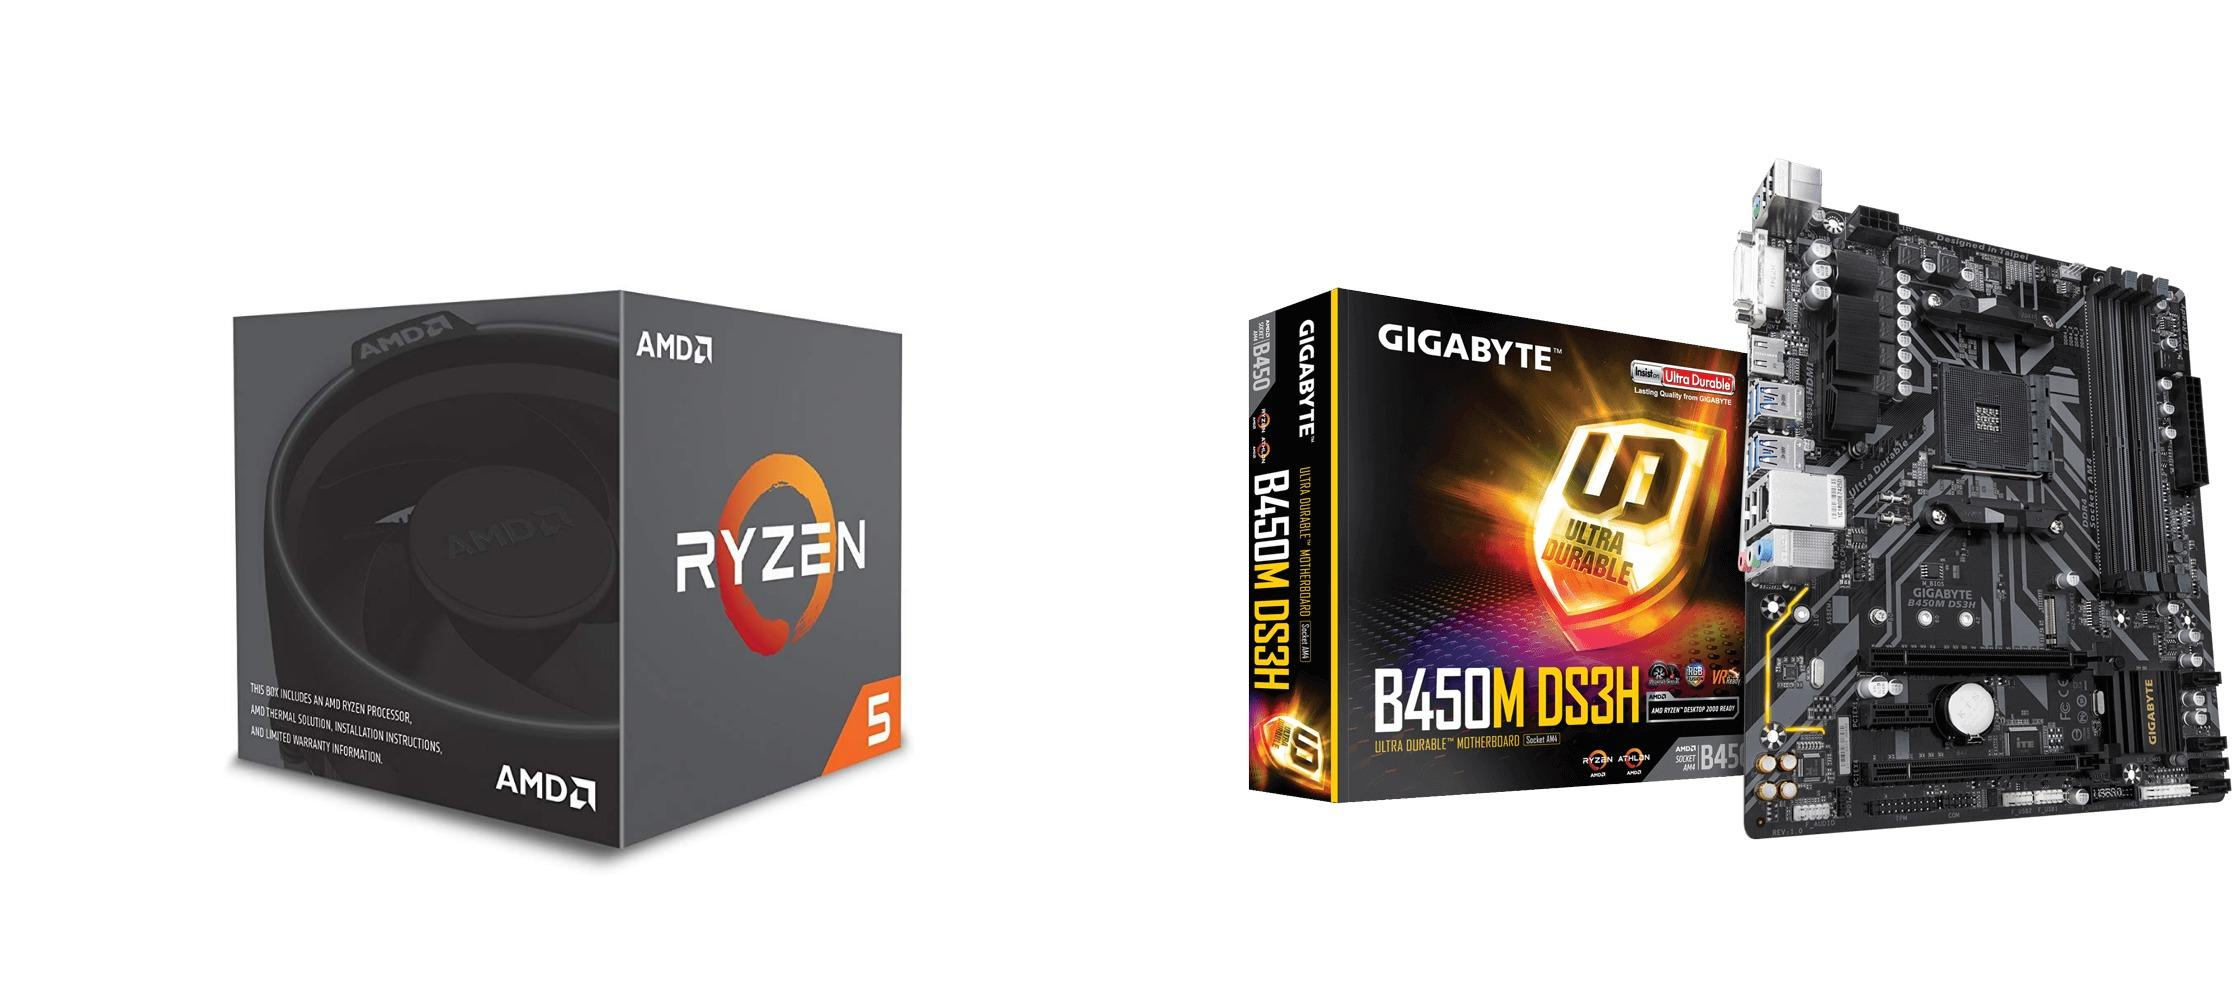 AMD Ryzen 5 2600 Processor with GIGABYTE B450M DS3H Ultra Durable  Motherboard